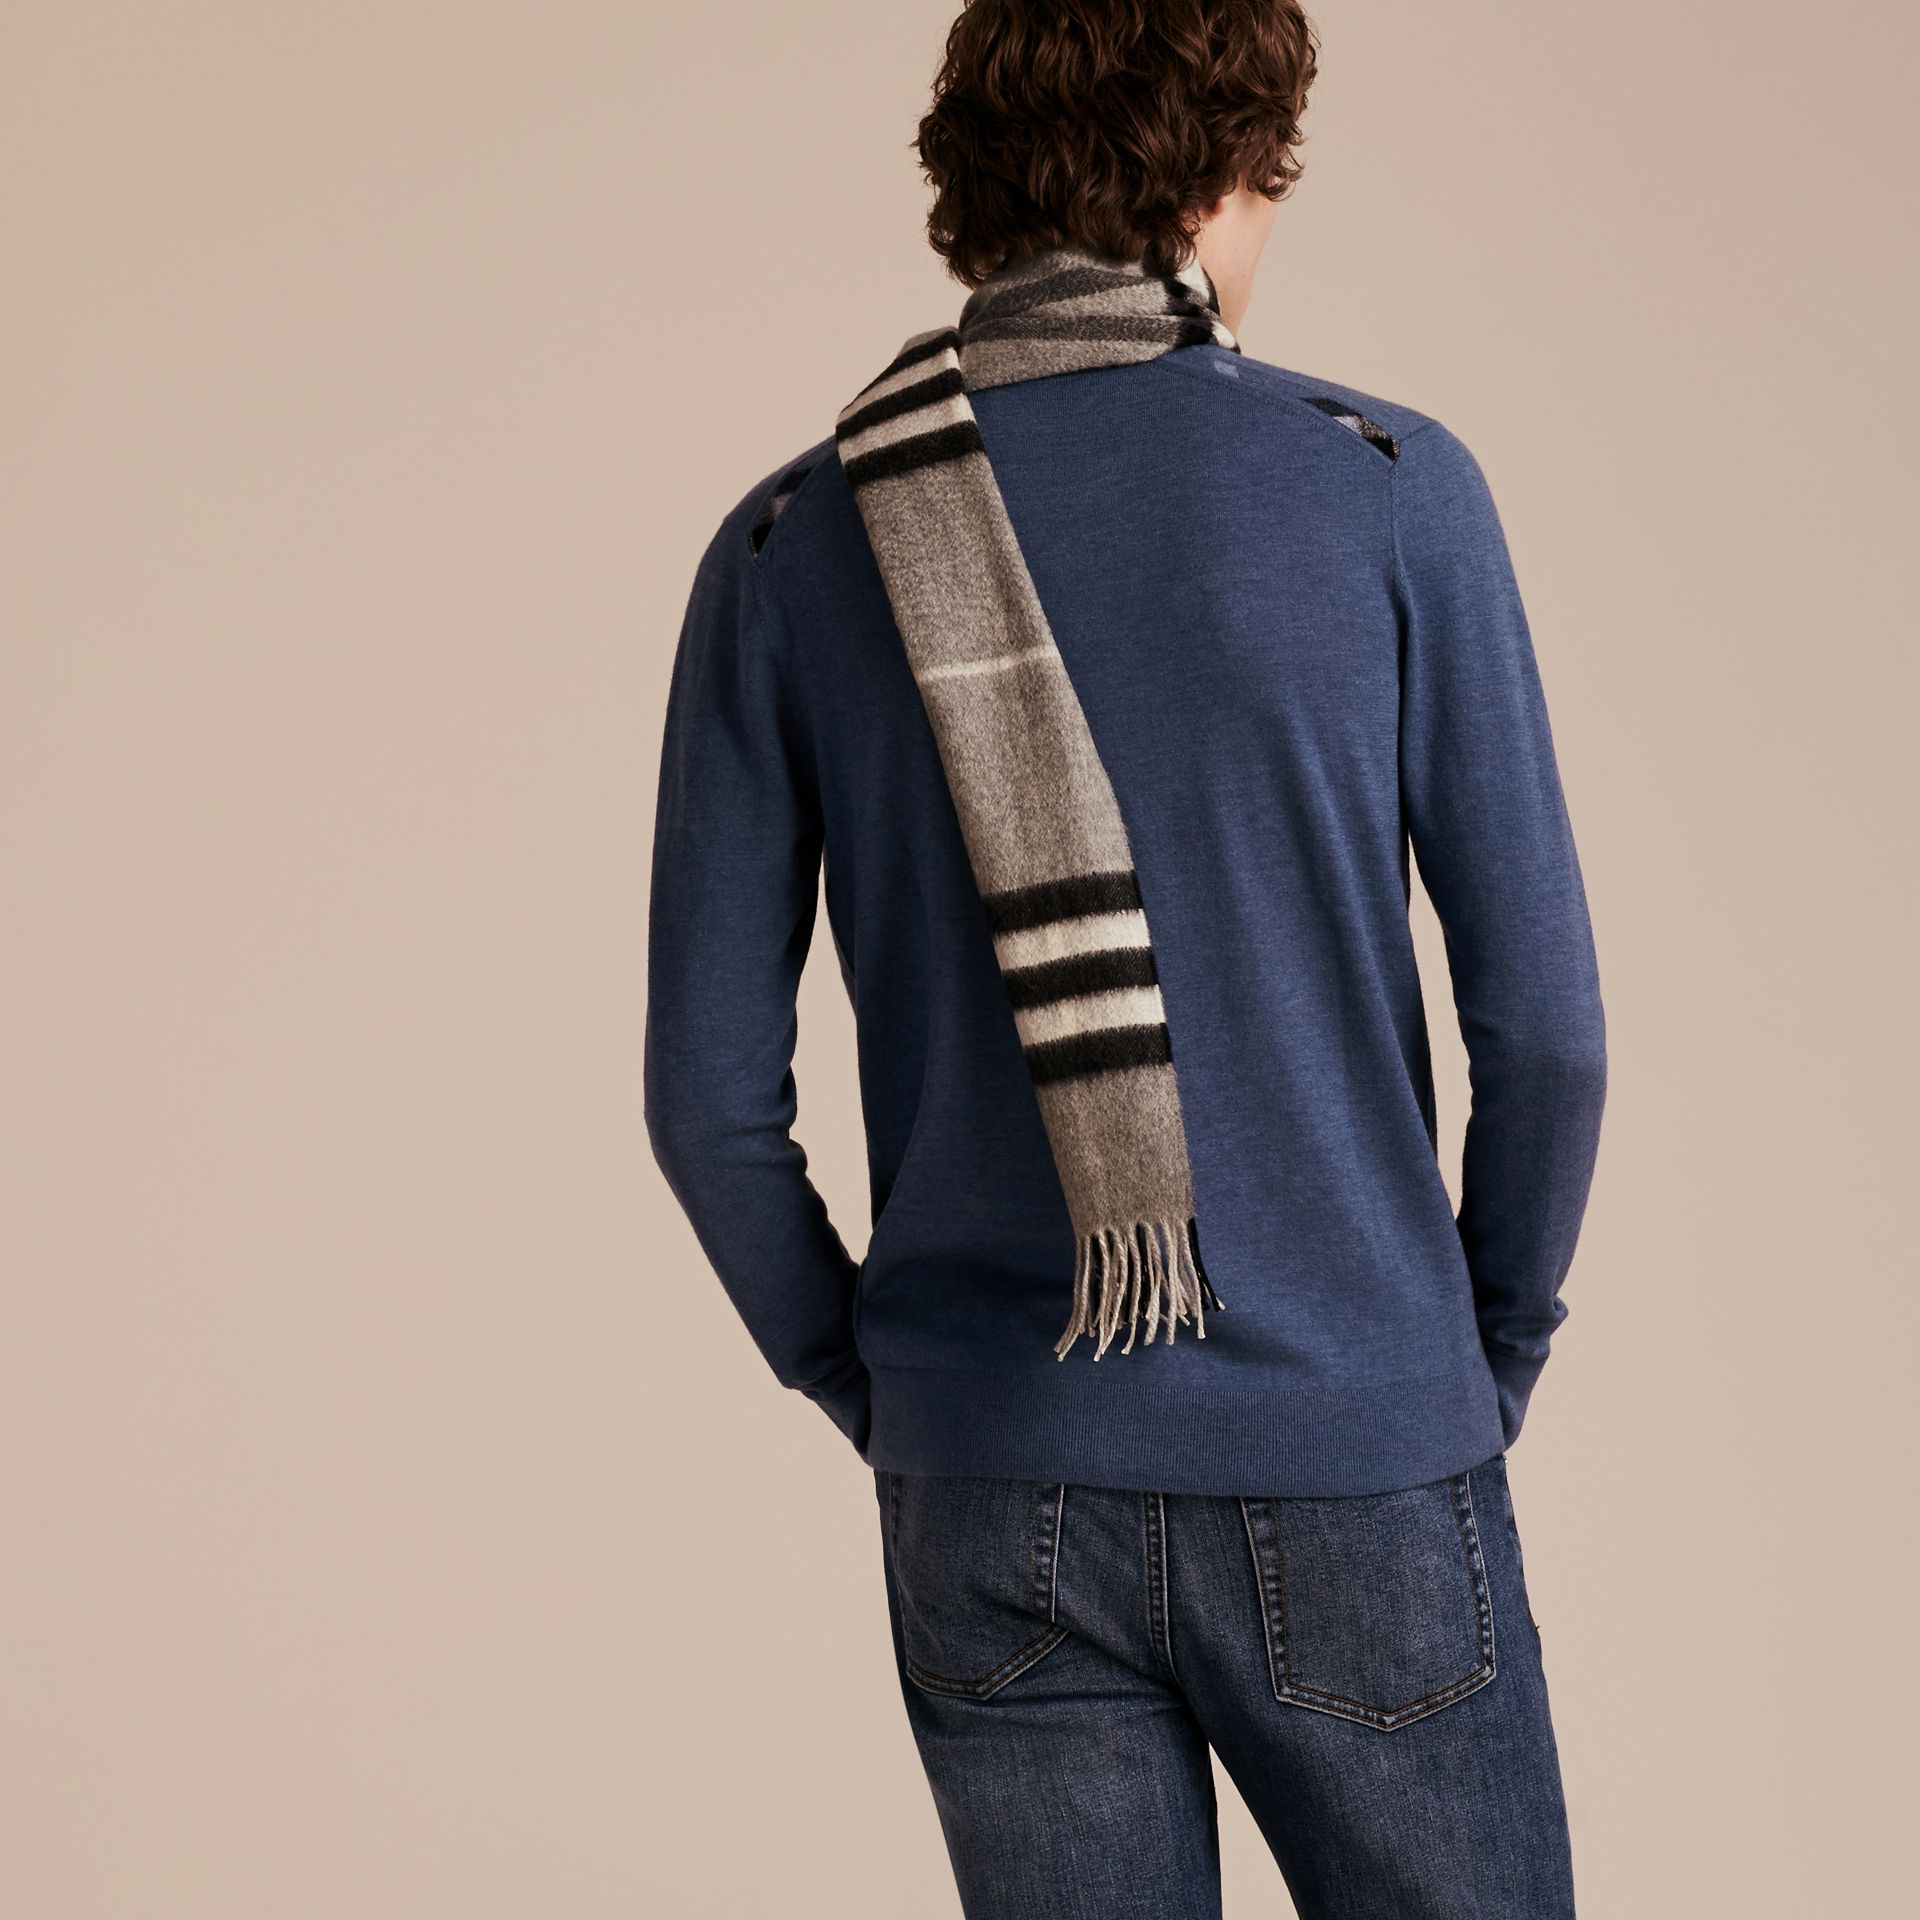 Lightweight Crew Neck Cashmere Sweater with Check Trim in Dusty Blue - Men | Burberry - gallery image 3